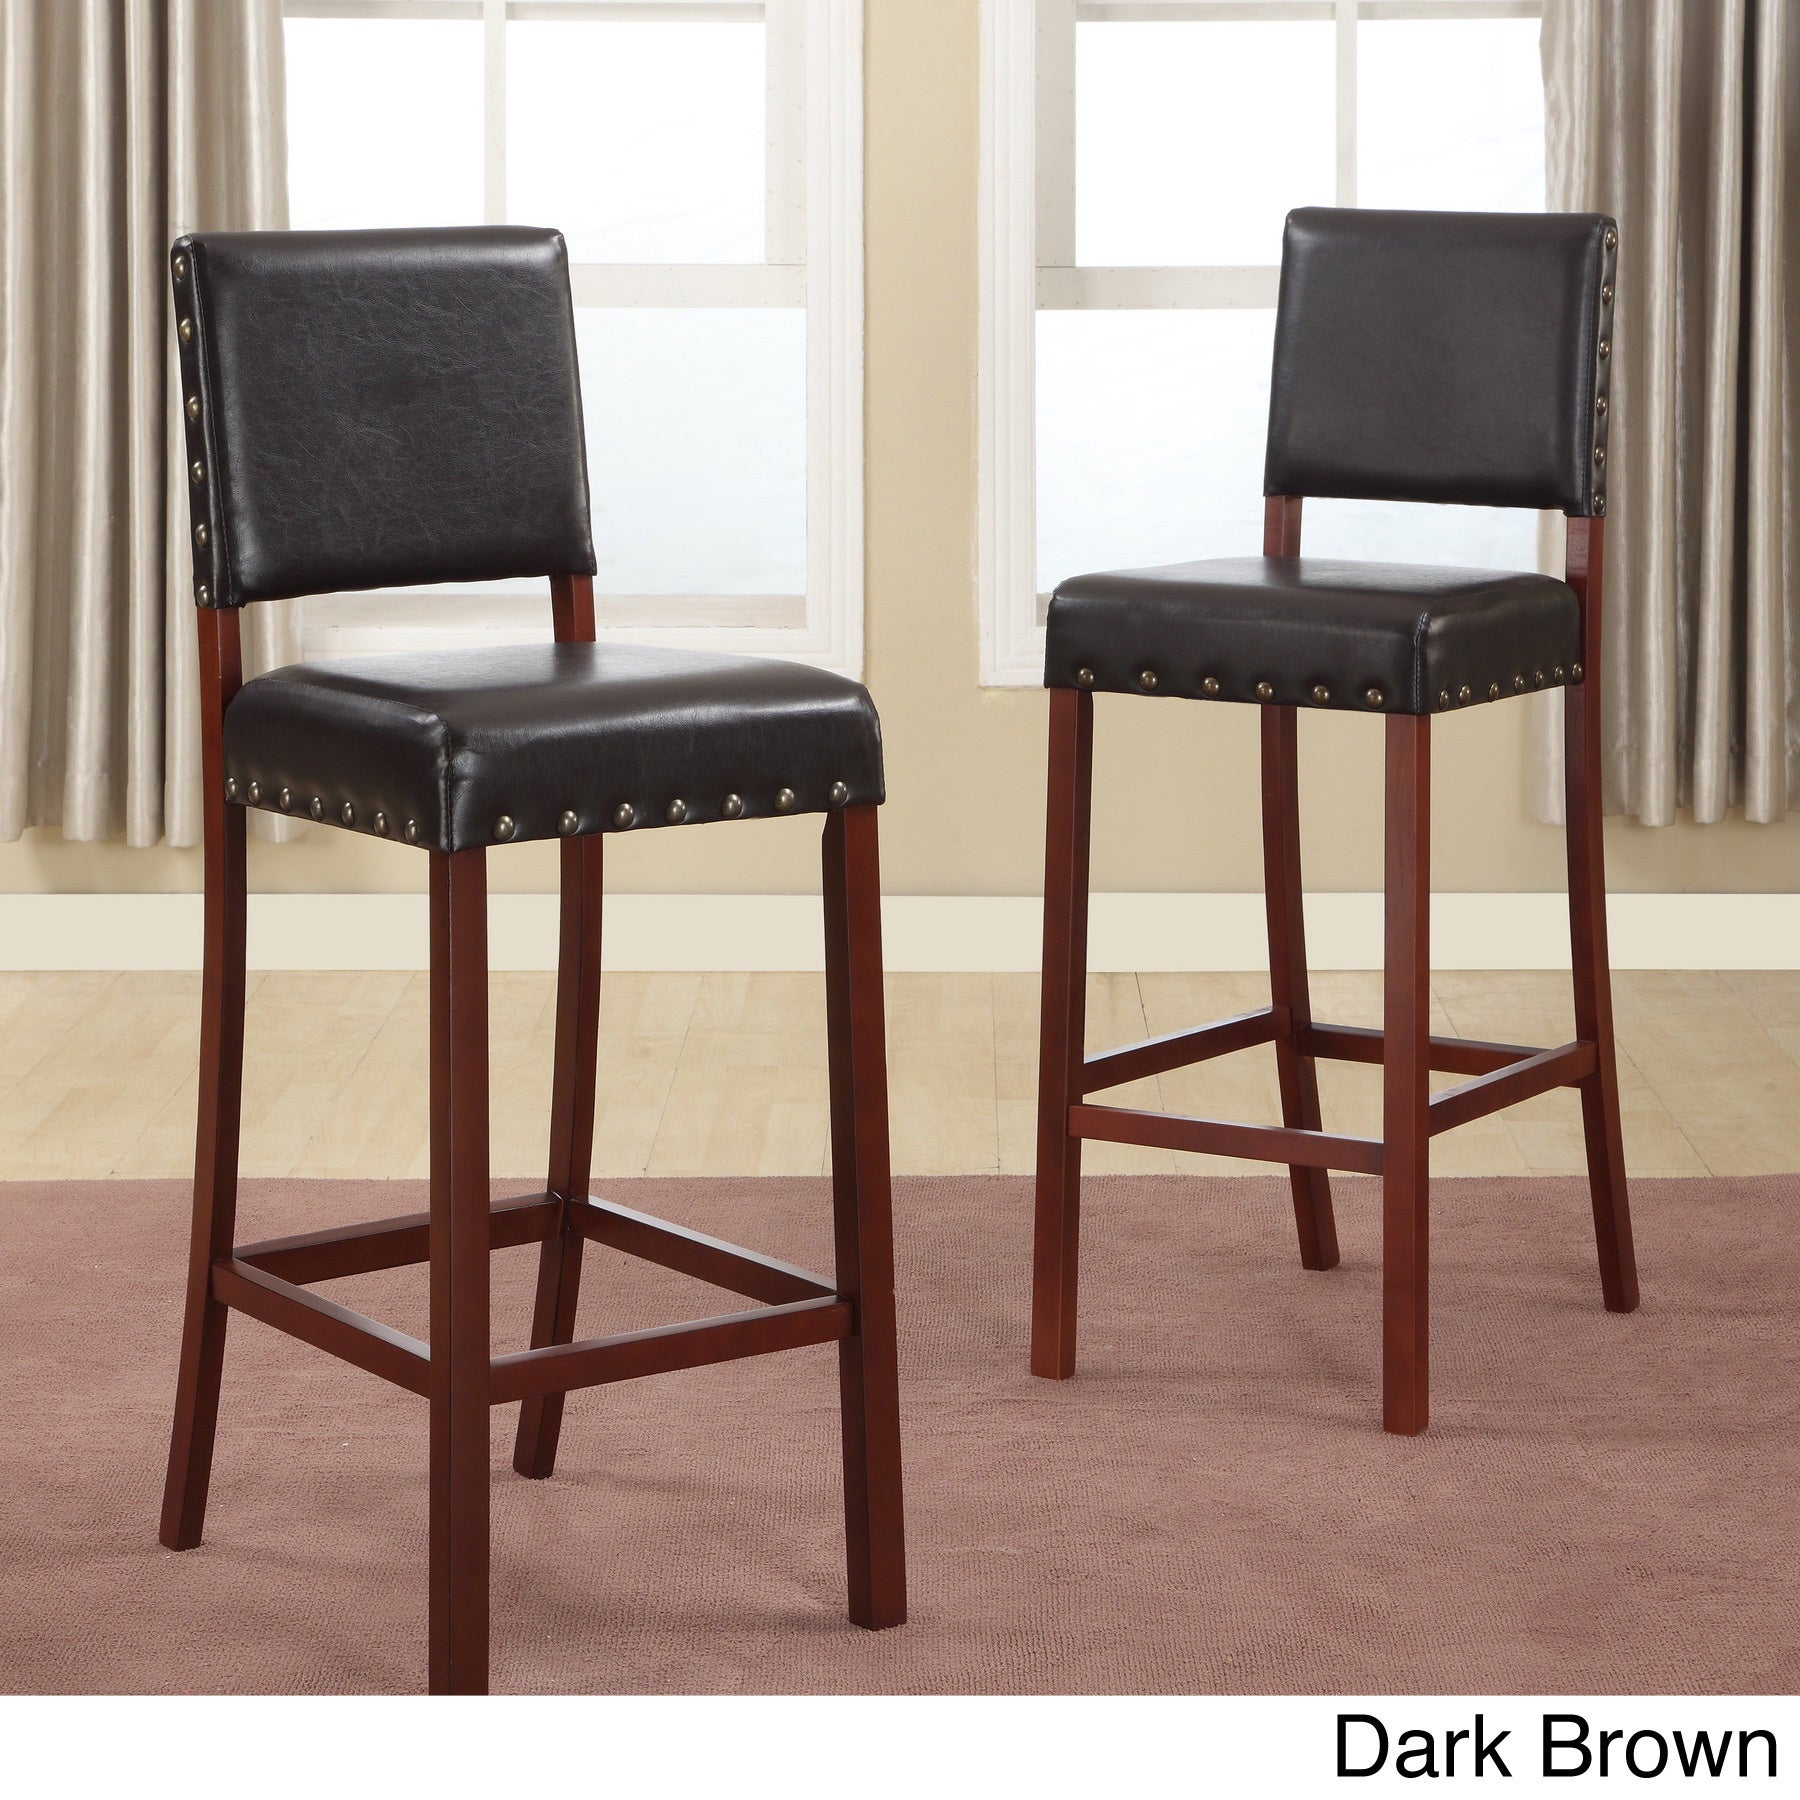 http://ak1.ostkcdn.com/images/products/8692637/Baxton-Studio-Noah-Modern-Faux-Leather-Bar-Stools-Set-of-2-L15945448.jpg